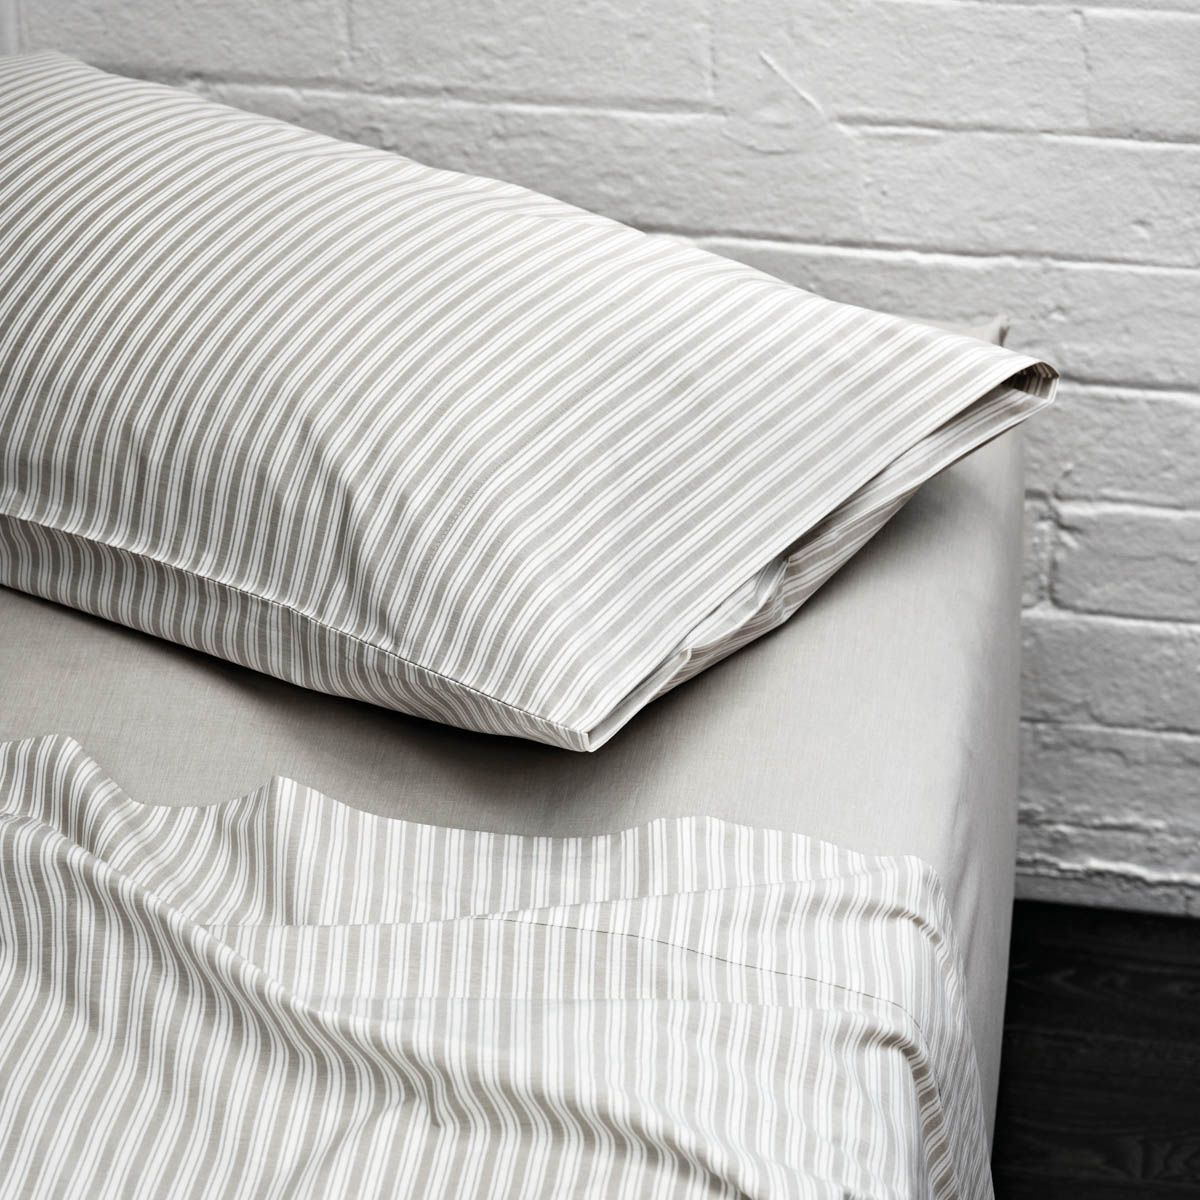 Black and white striped bed sheets - Aura Ticking Stripe Sheets Taupe